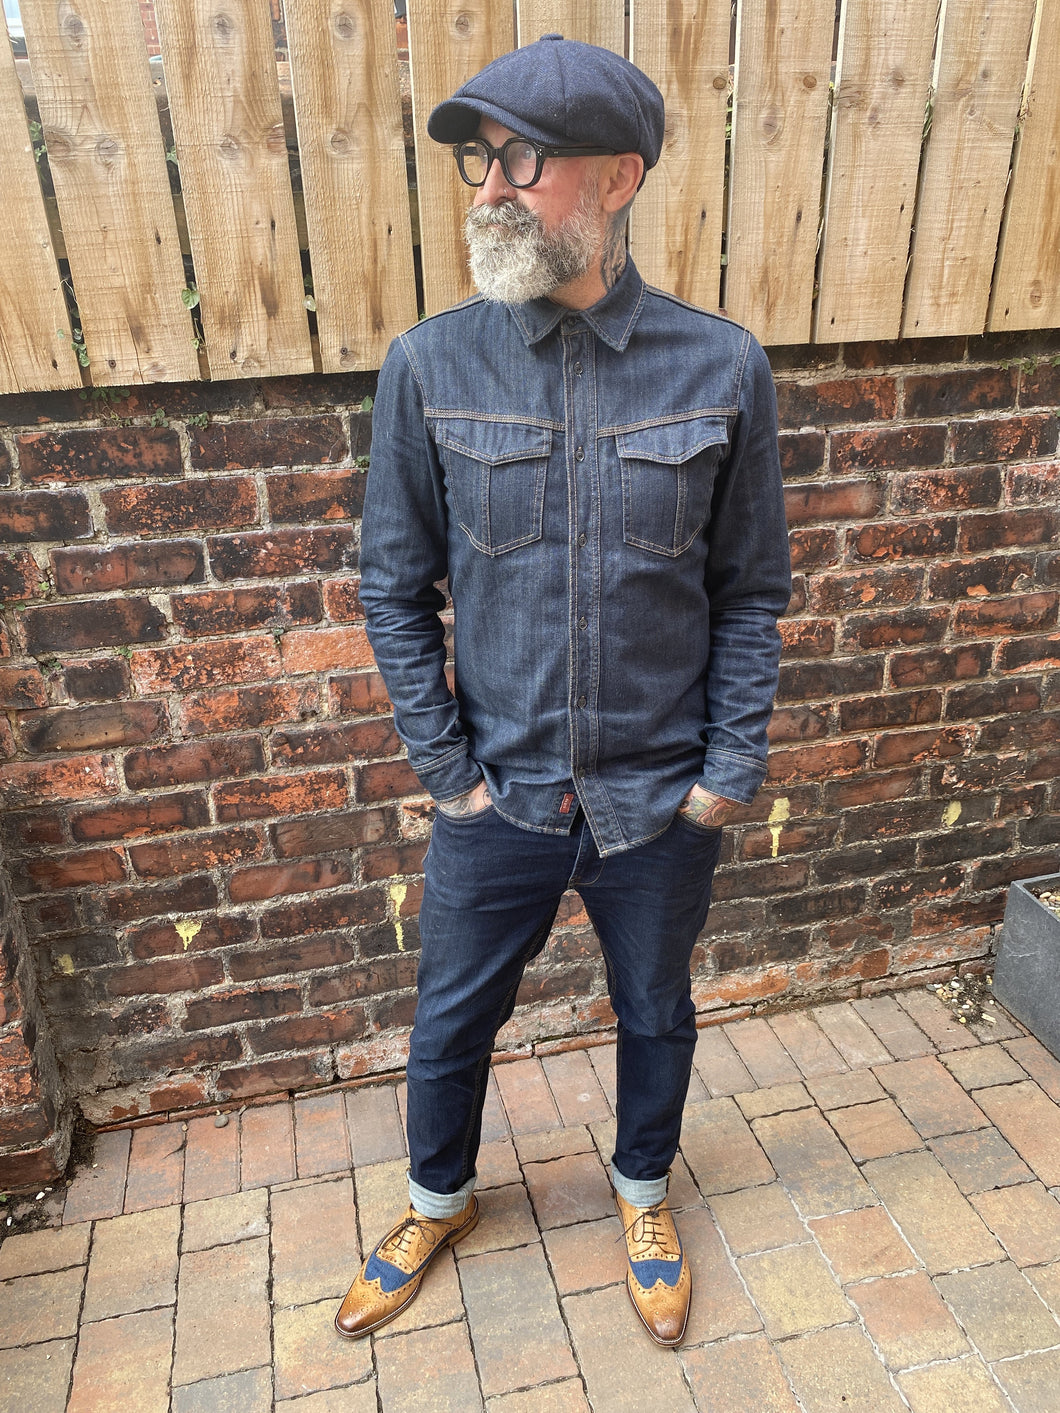 Simon's Double Denim Casual Look blend-dark-wash-denim-shirt / blend-rock-dark-wash-regular-fit-jeans / london-brogues-william-derby-tan-navy-shoes